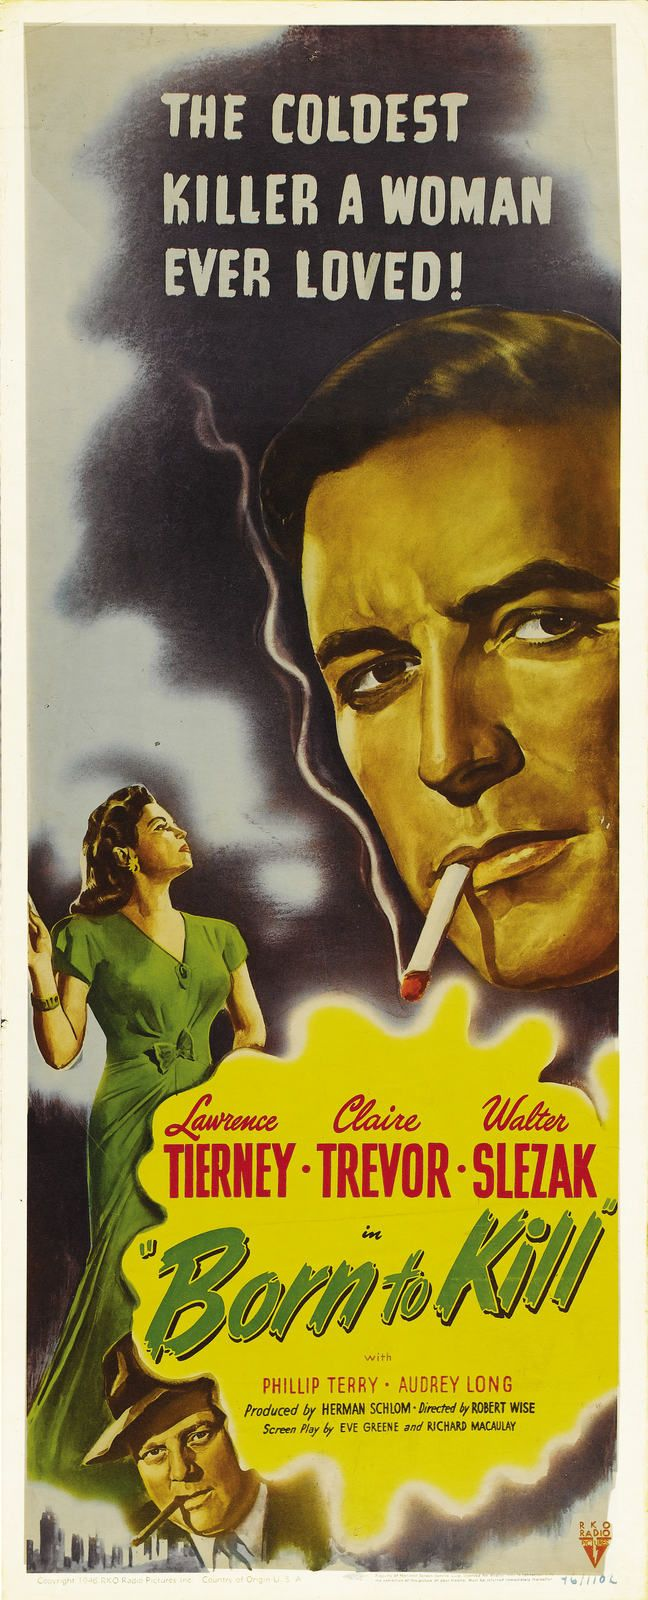 Born to Kill (1947) is a gritty, well-acted film noir of greed and lust starring Lawrence Tierney, Claire Trevor, and Elisha Cooke, Jr. It's considered a cult favorite.